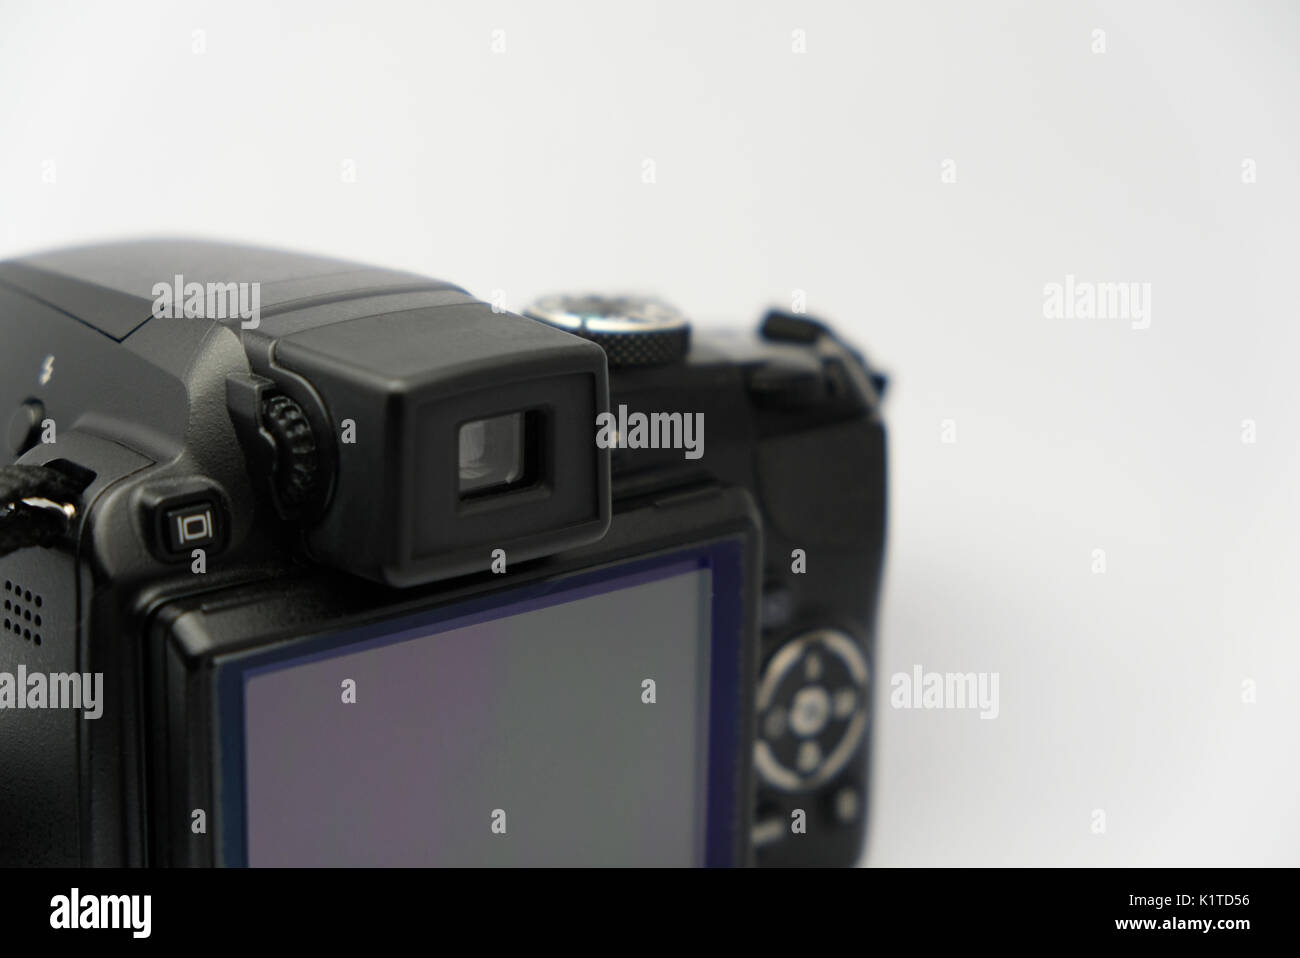 DLSR camera controls from the back - Stock Image